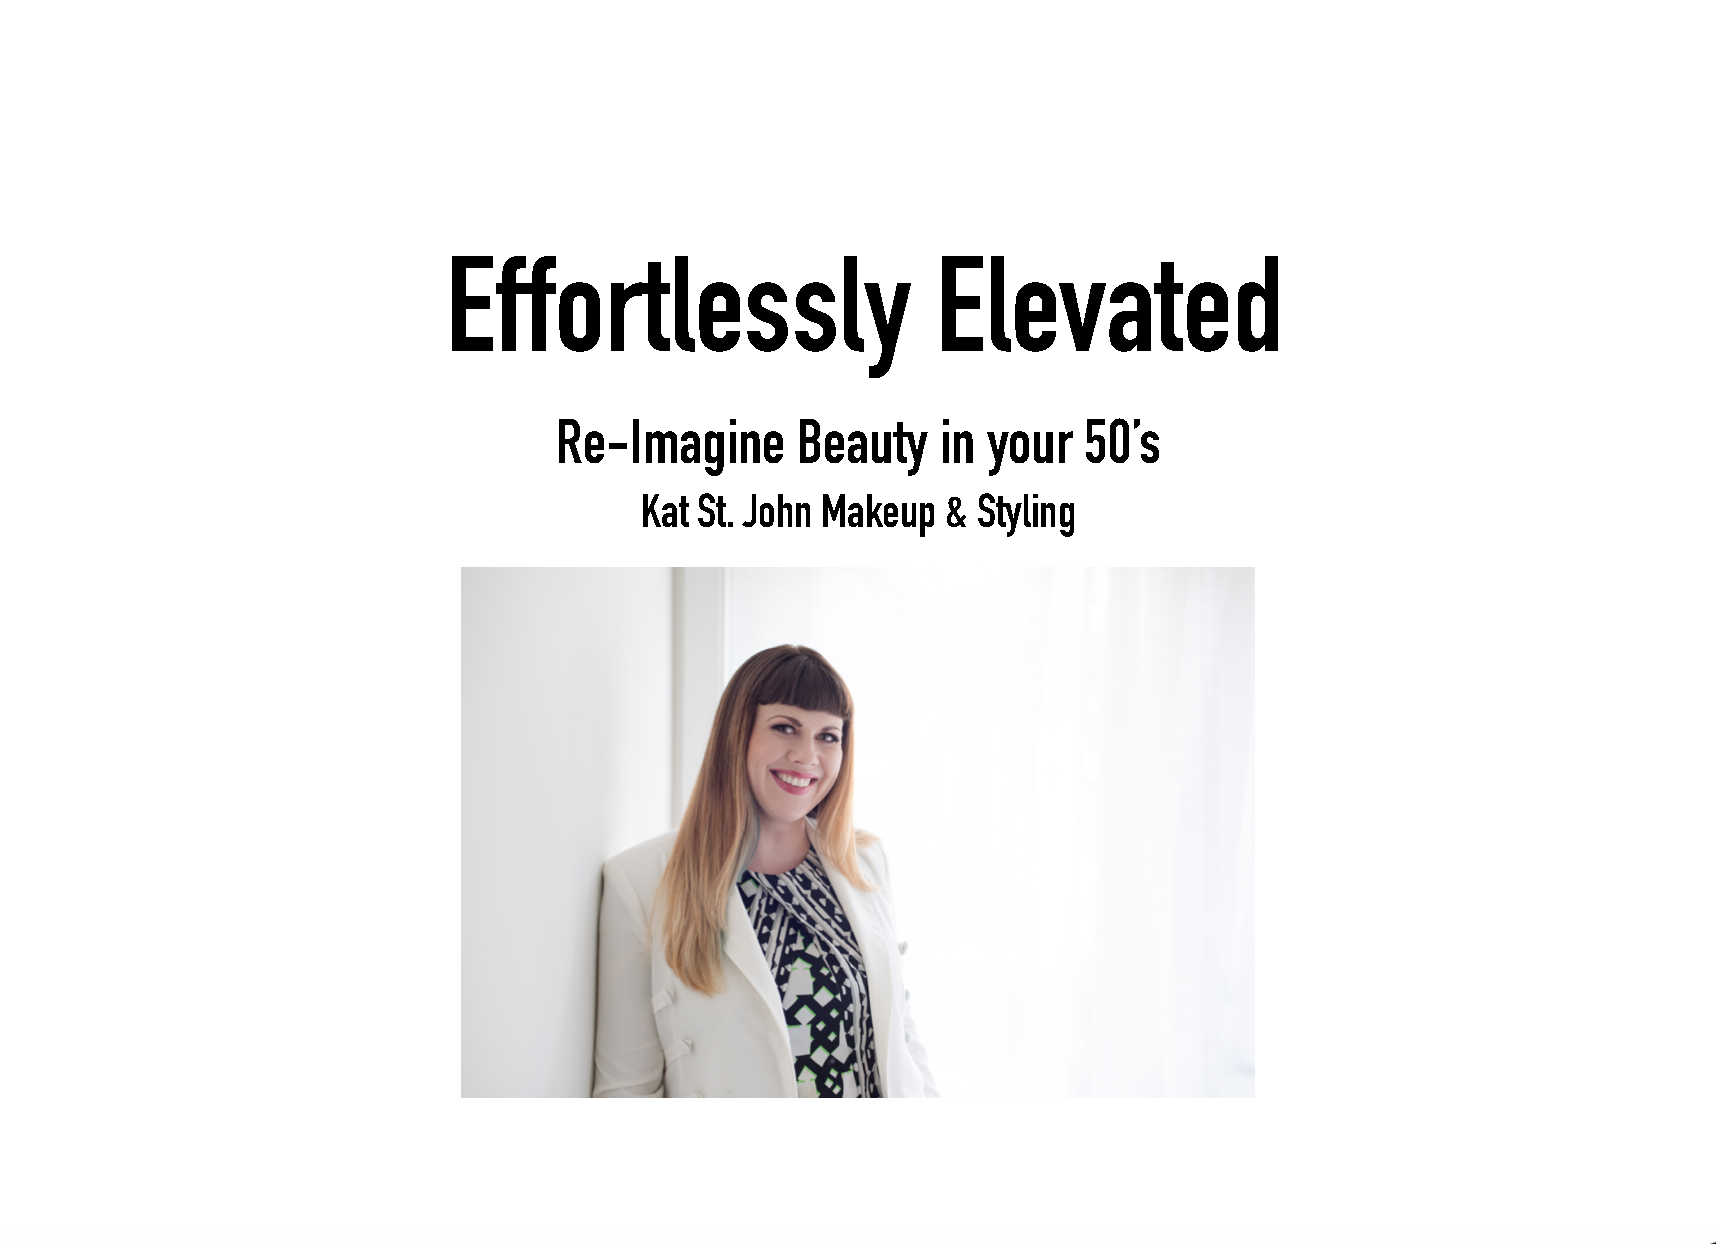 Efforlessly Elevated in your 50's - a collaborative effort to discuss quick makeup tips for the everyday lady.